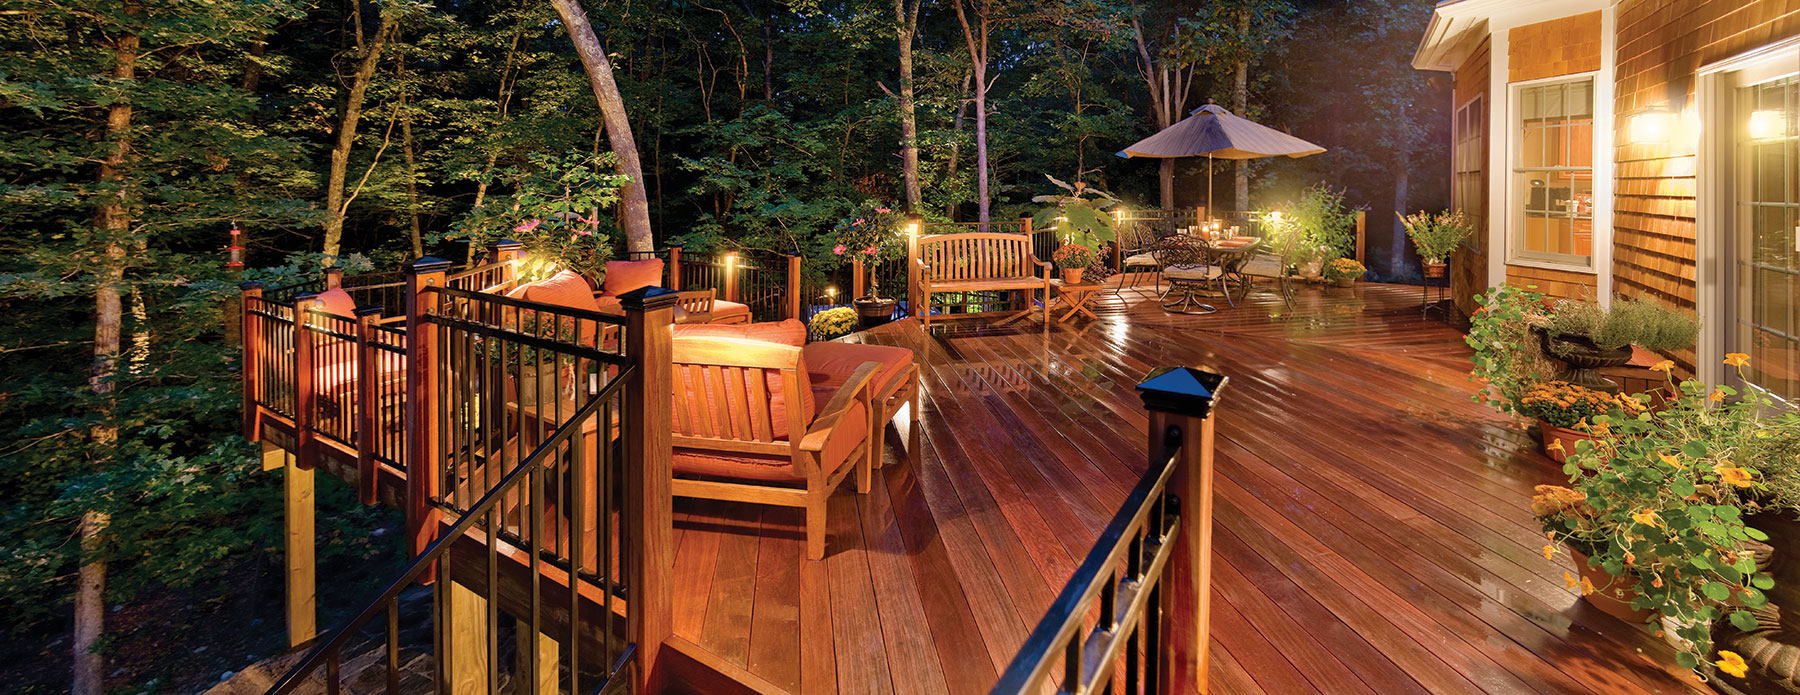 outdoor deck lighting. outdoor deck lighting r